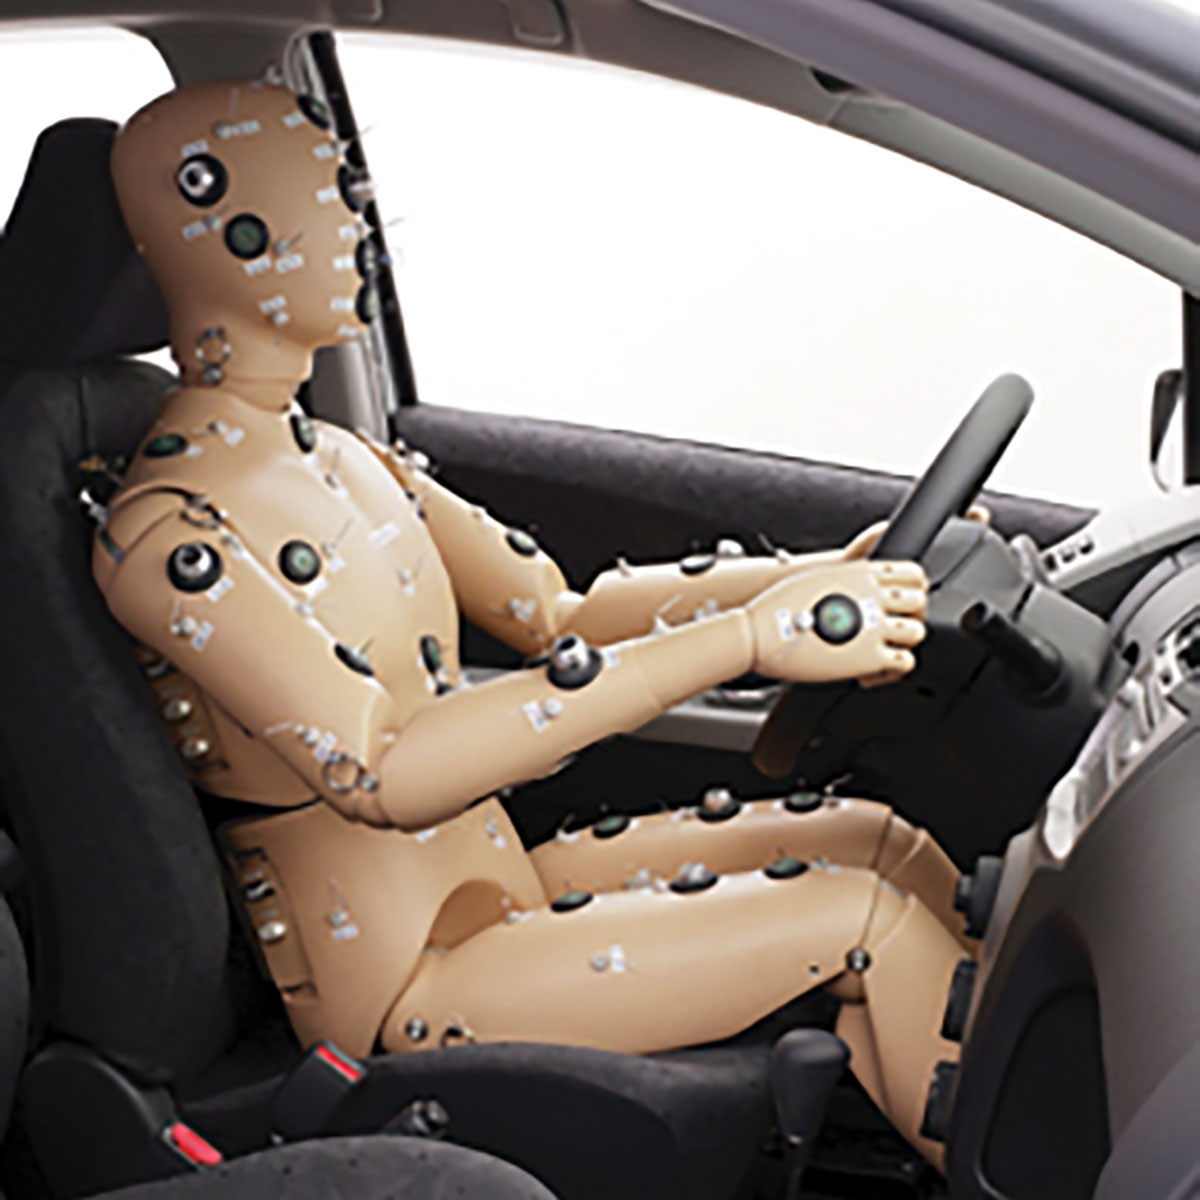 Kanomax Amenity Manikin System for Automotive Testing